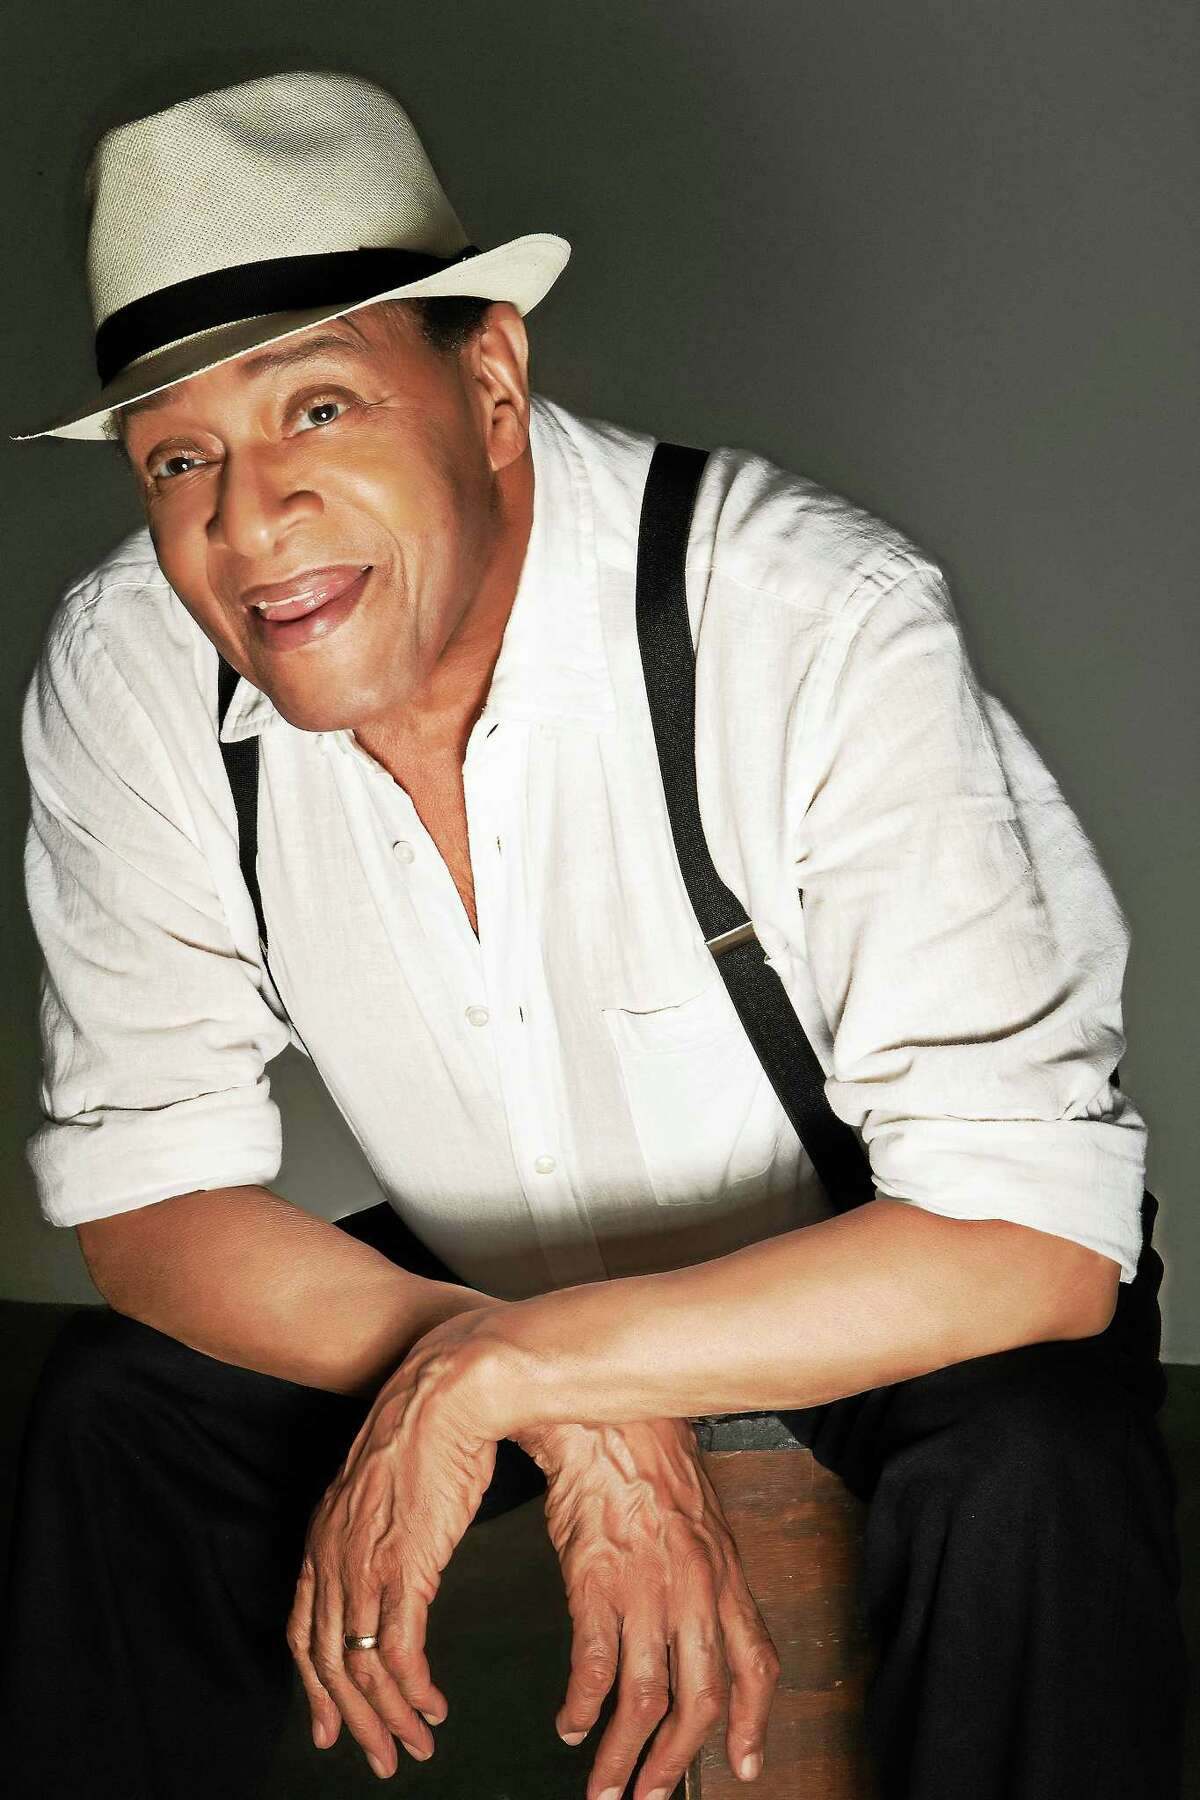 At 75, Al Jarreau has stayed busy working worldwide.